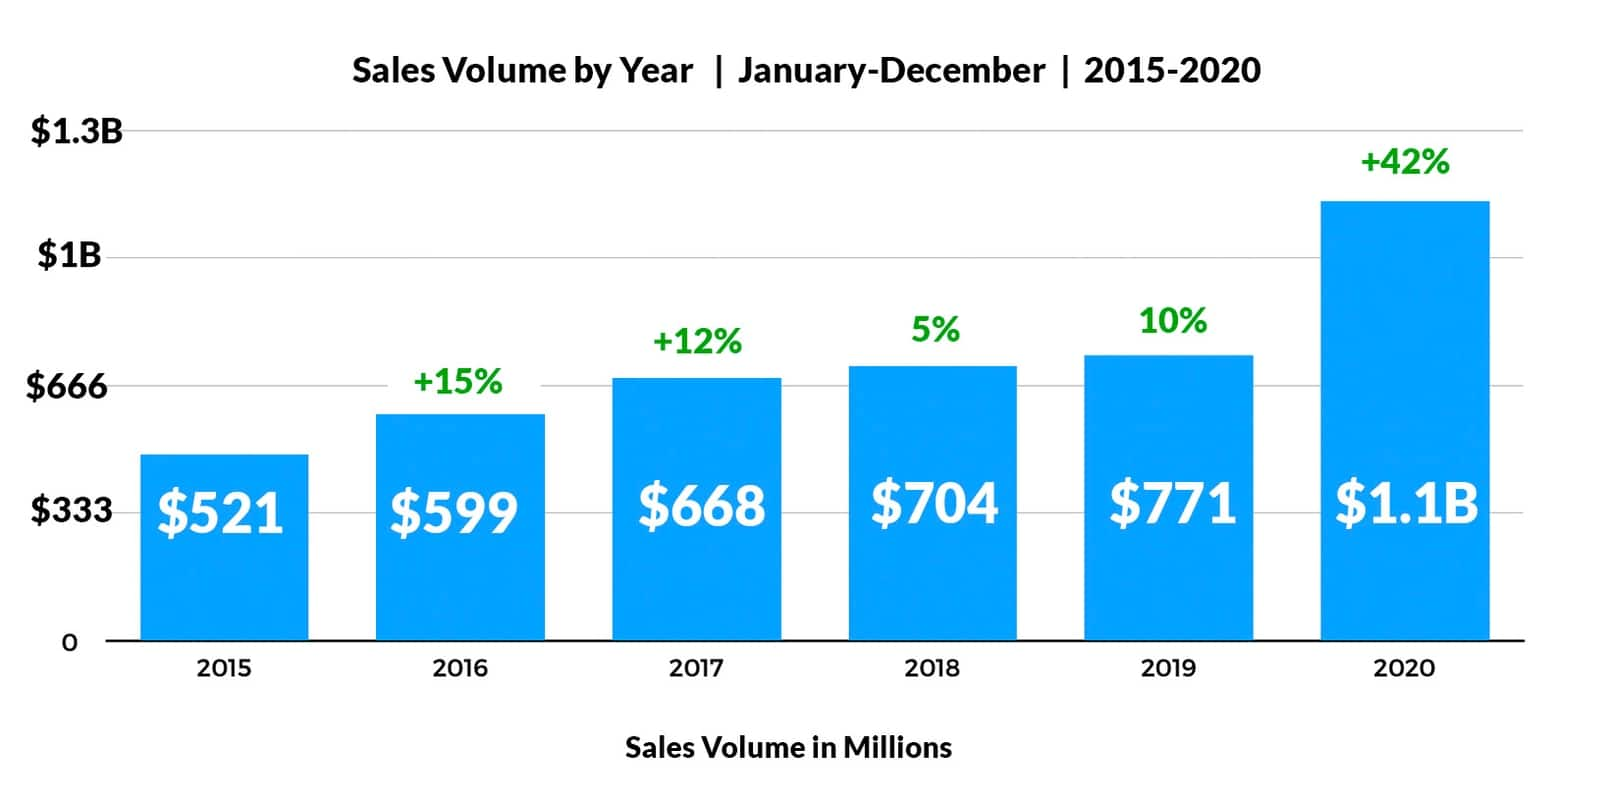 Sale Volume By Year: 2015-2020